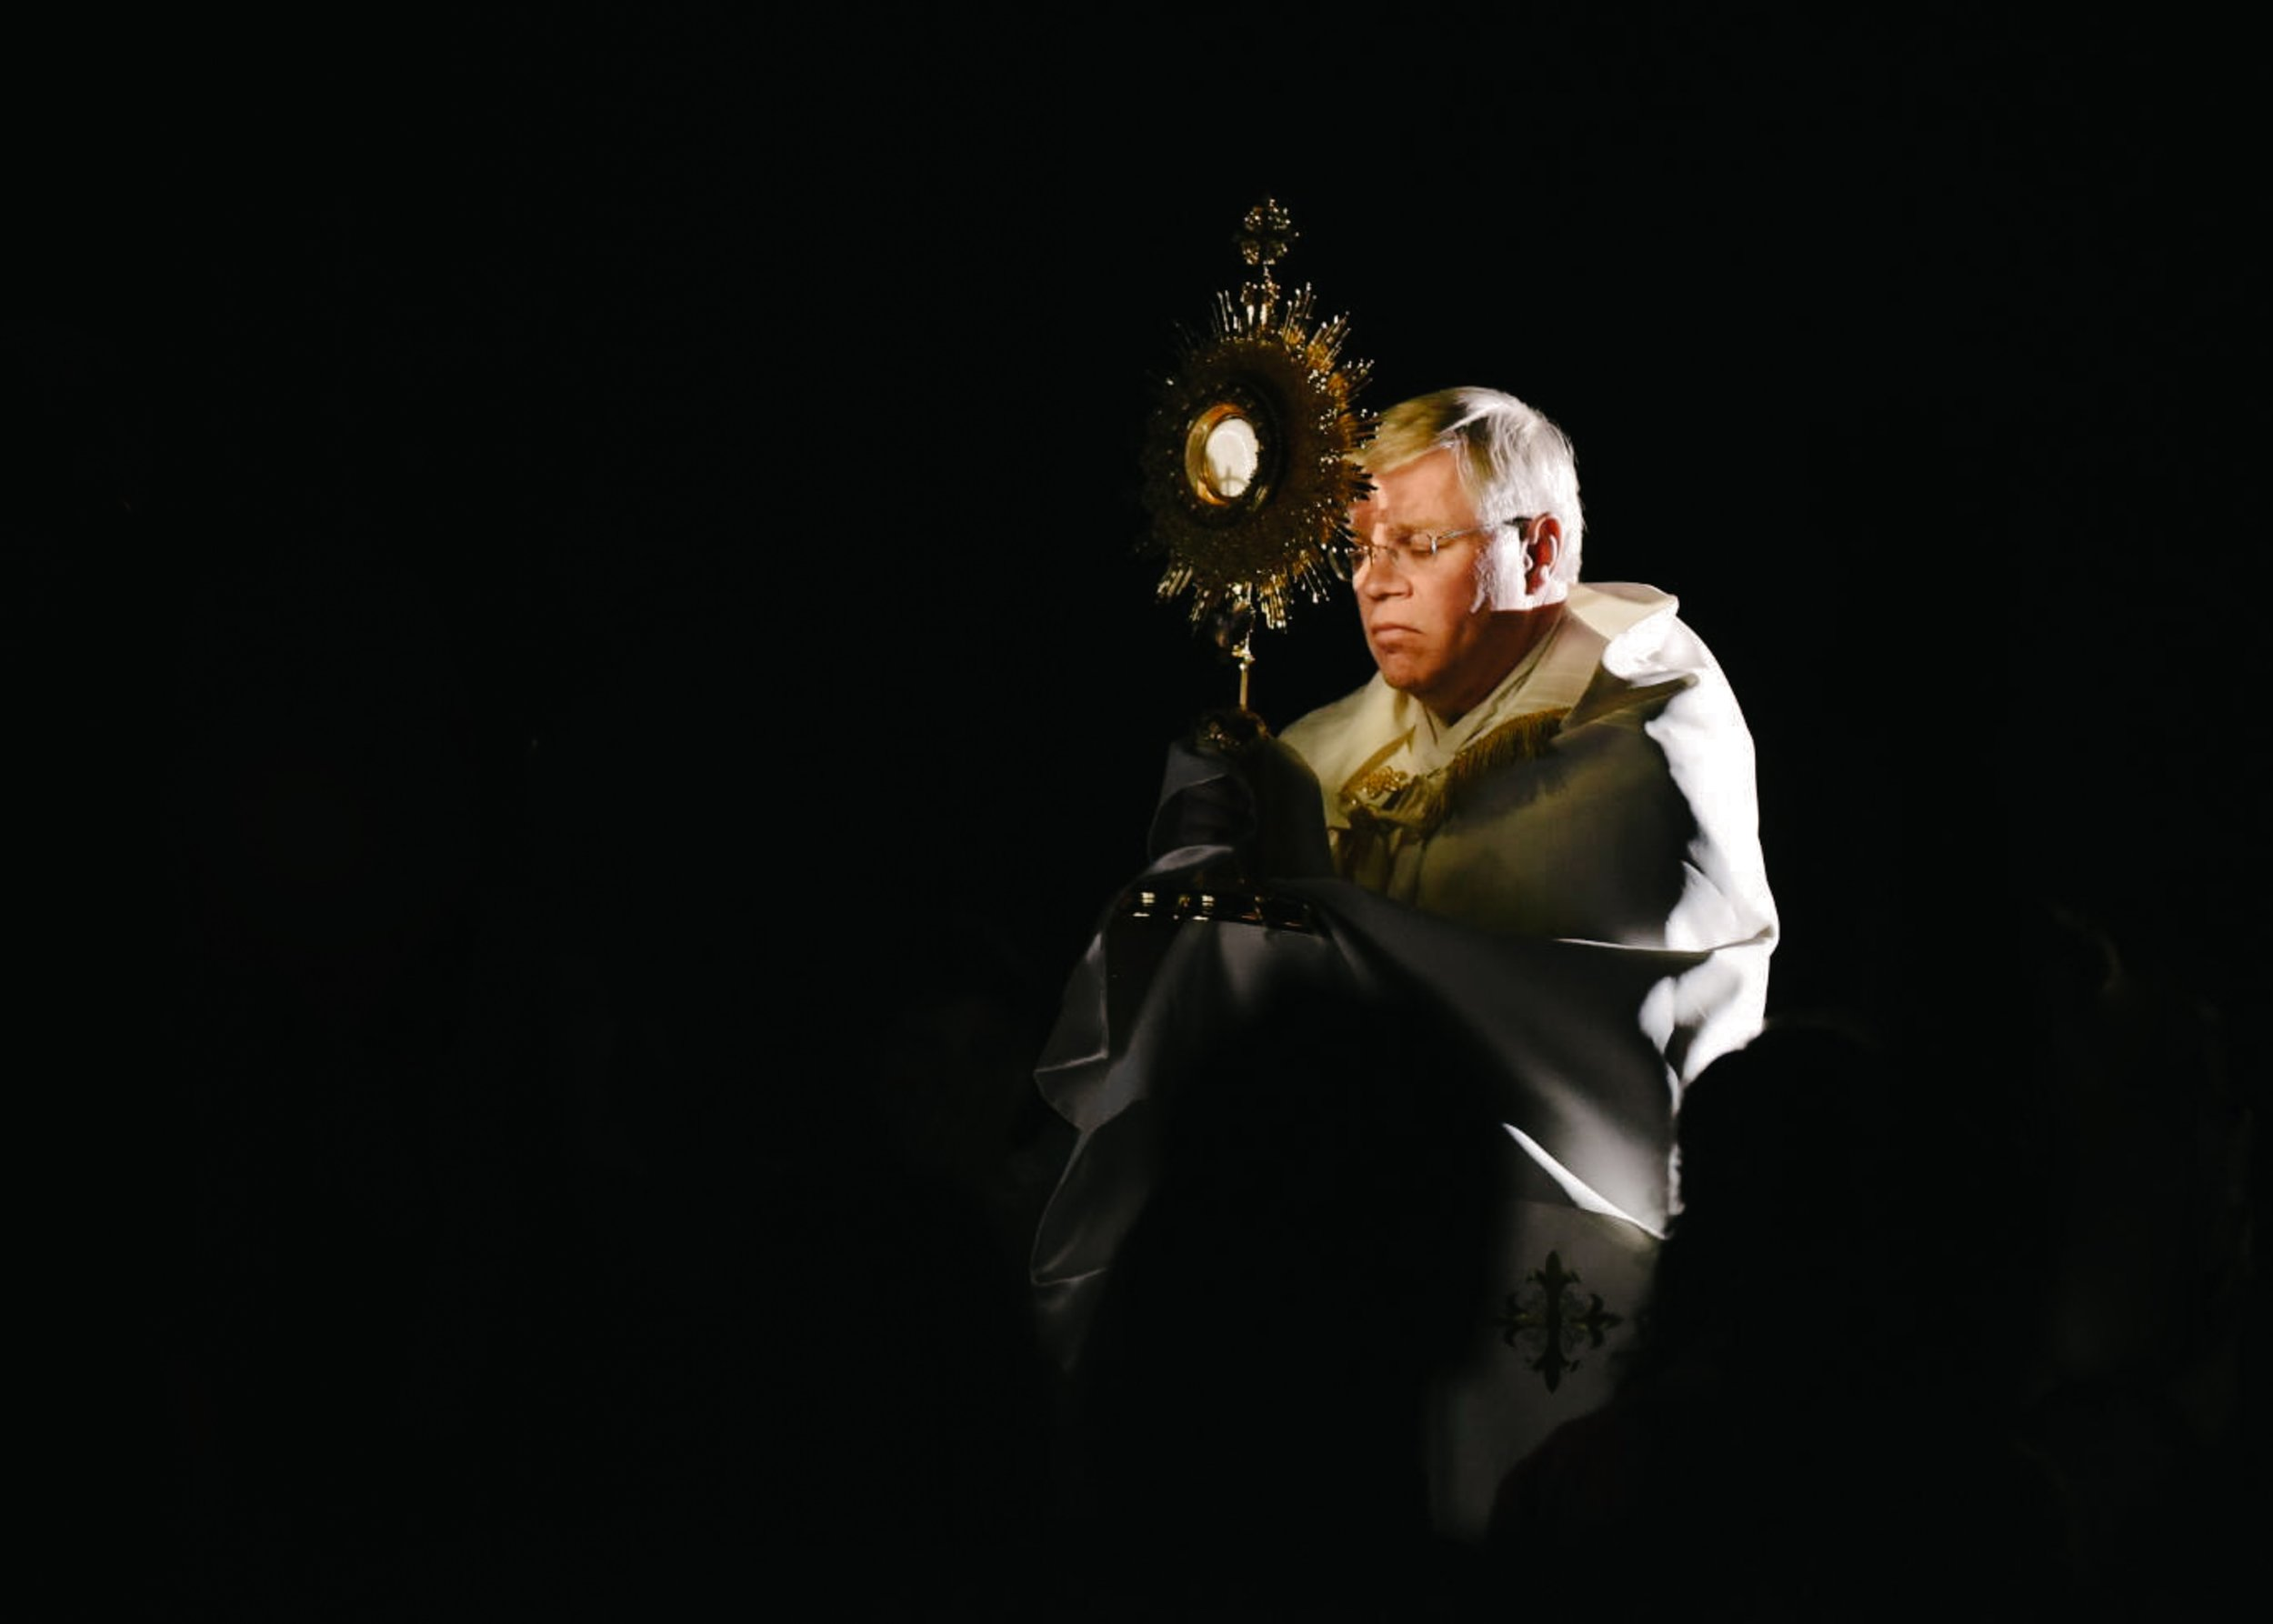 Priest carrying the Monstrance